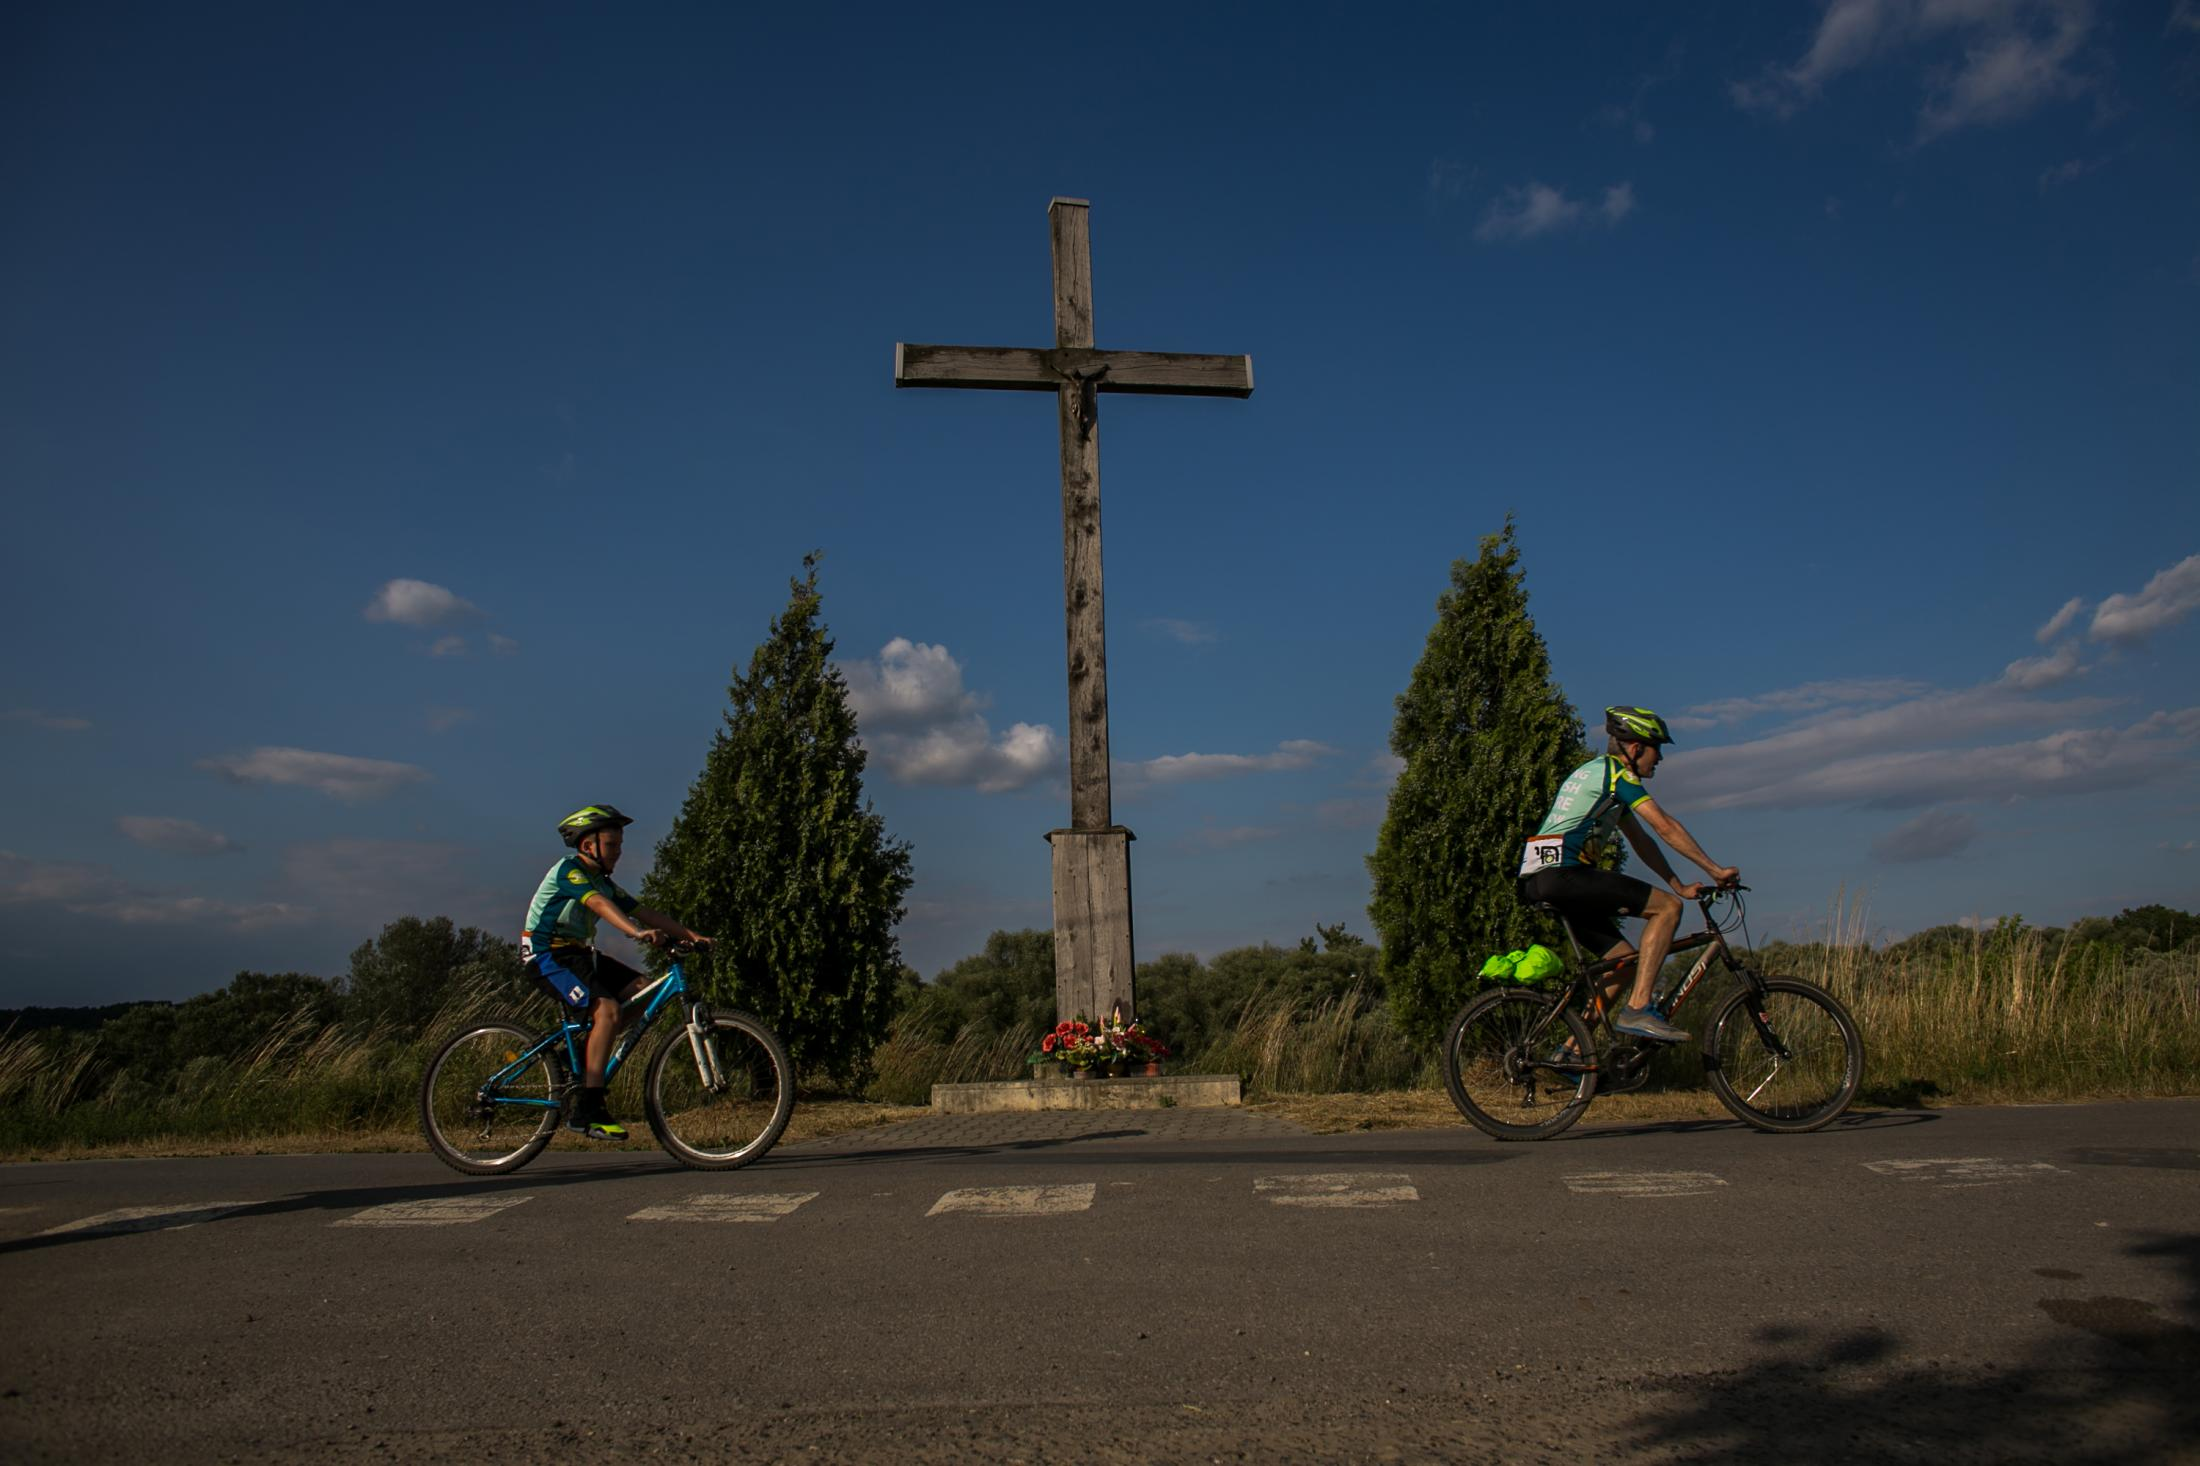 Bodzów, Poland 6/28/2019 Ride For The Living. Some of the 250 participants in Ride for the Living, a 100-kilometer ride from Auschwitz to Krakow, Poland, June 28, 2019.